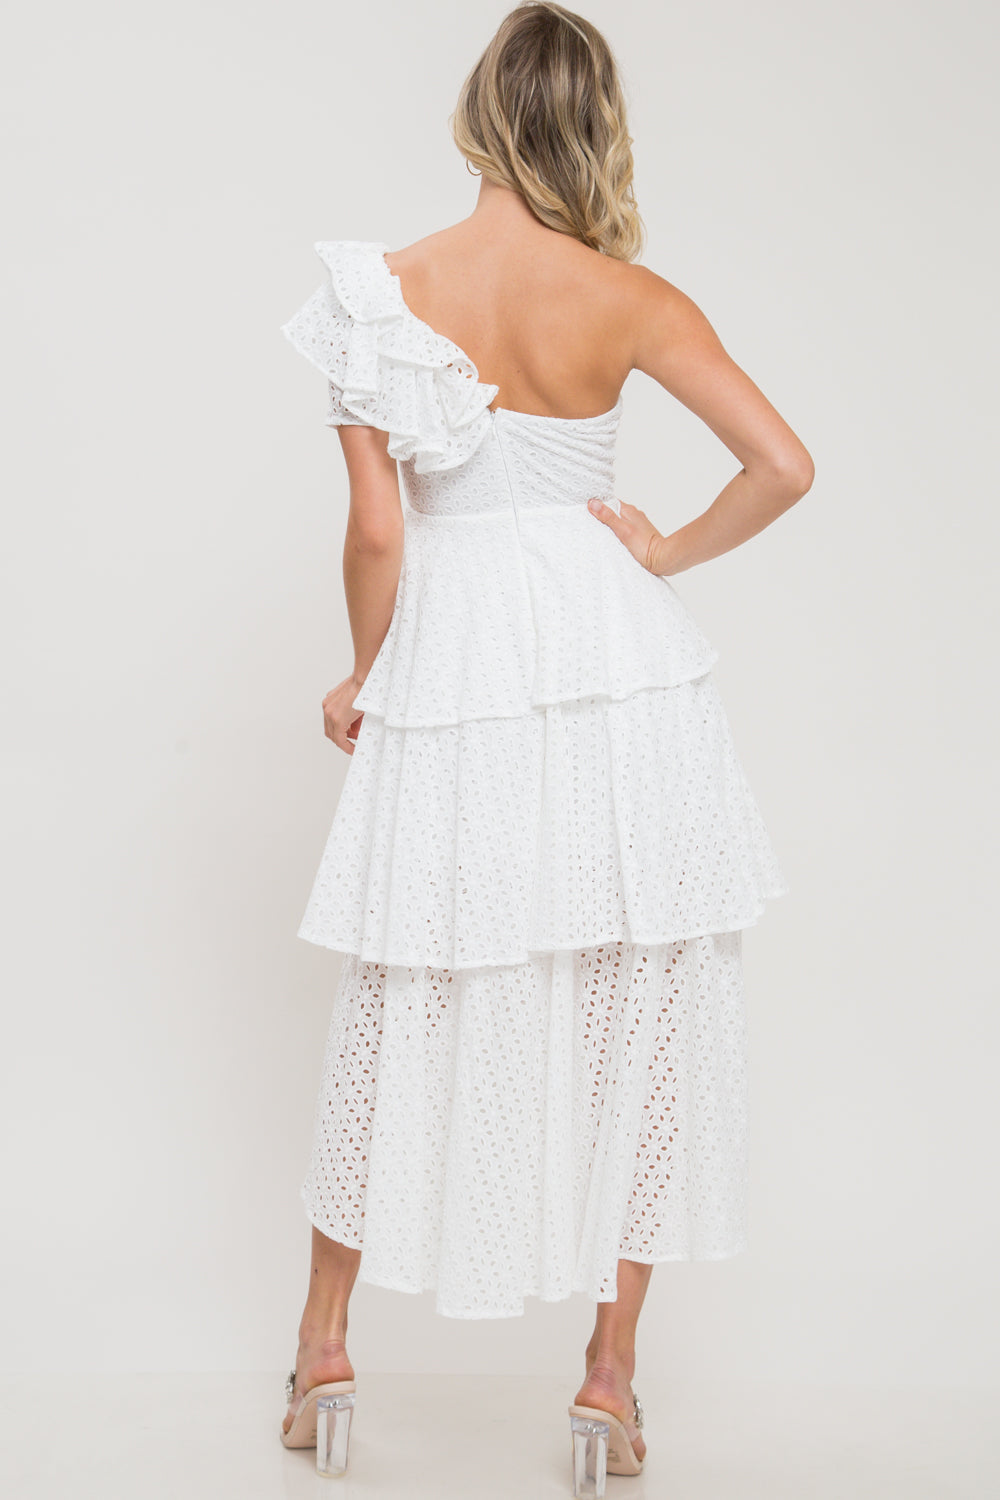 Purity Perforated One Shoulder Ruffle Dress - Geegeebae